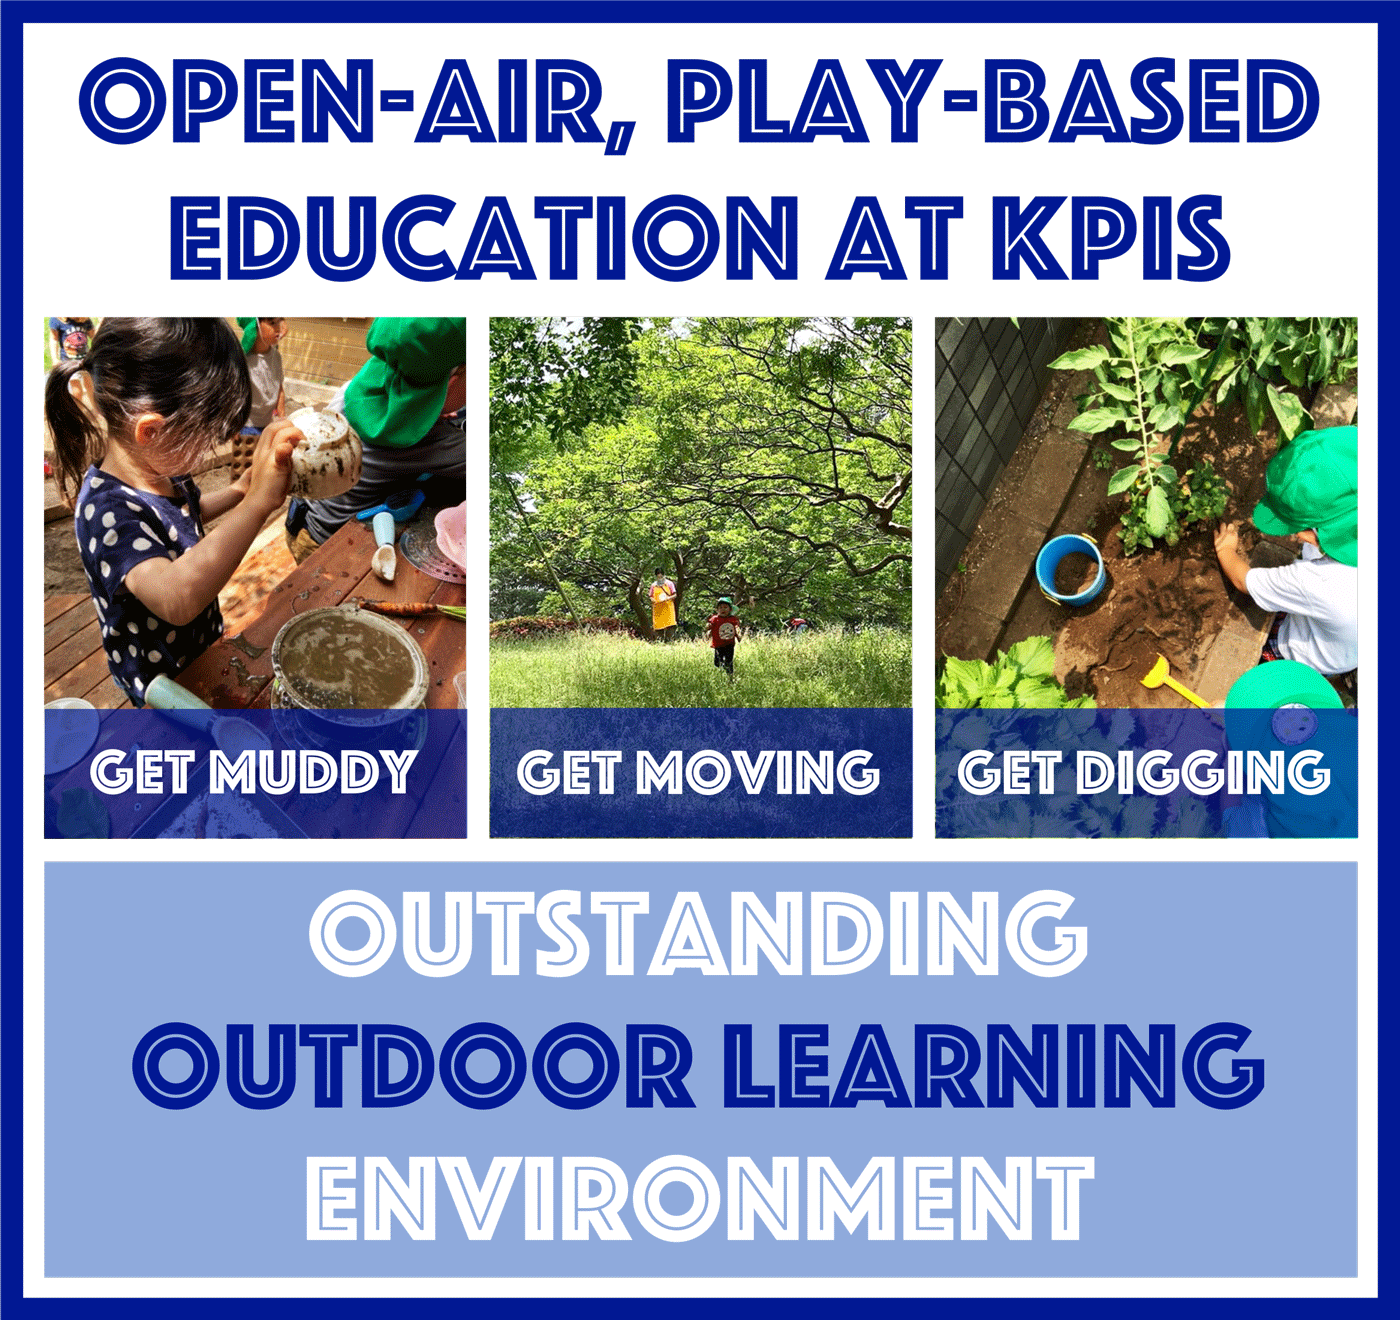 Komazawa park international school | OUTDOOR LEARNING